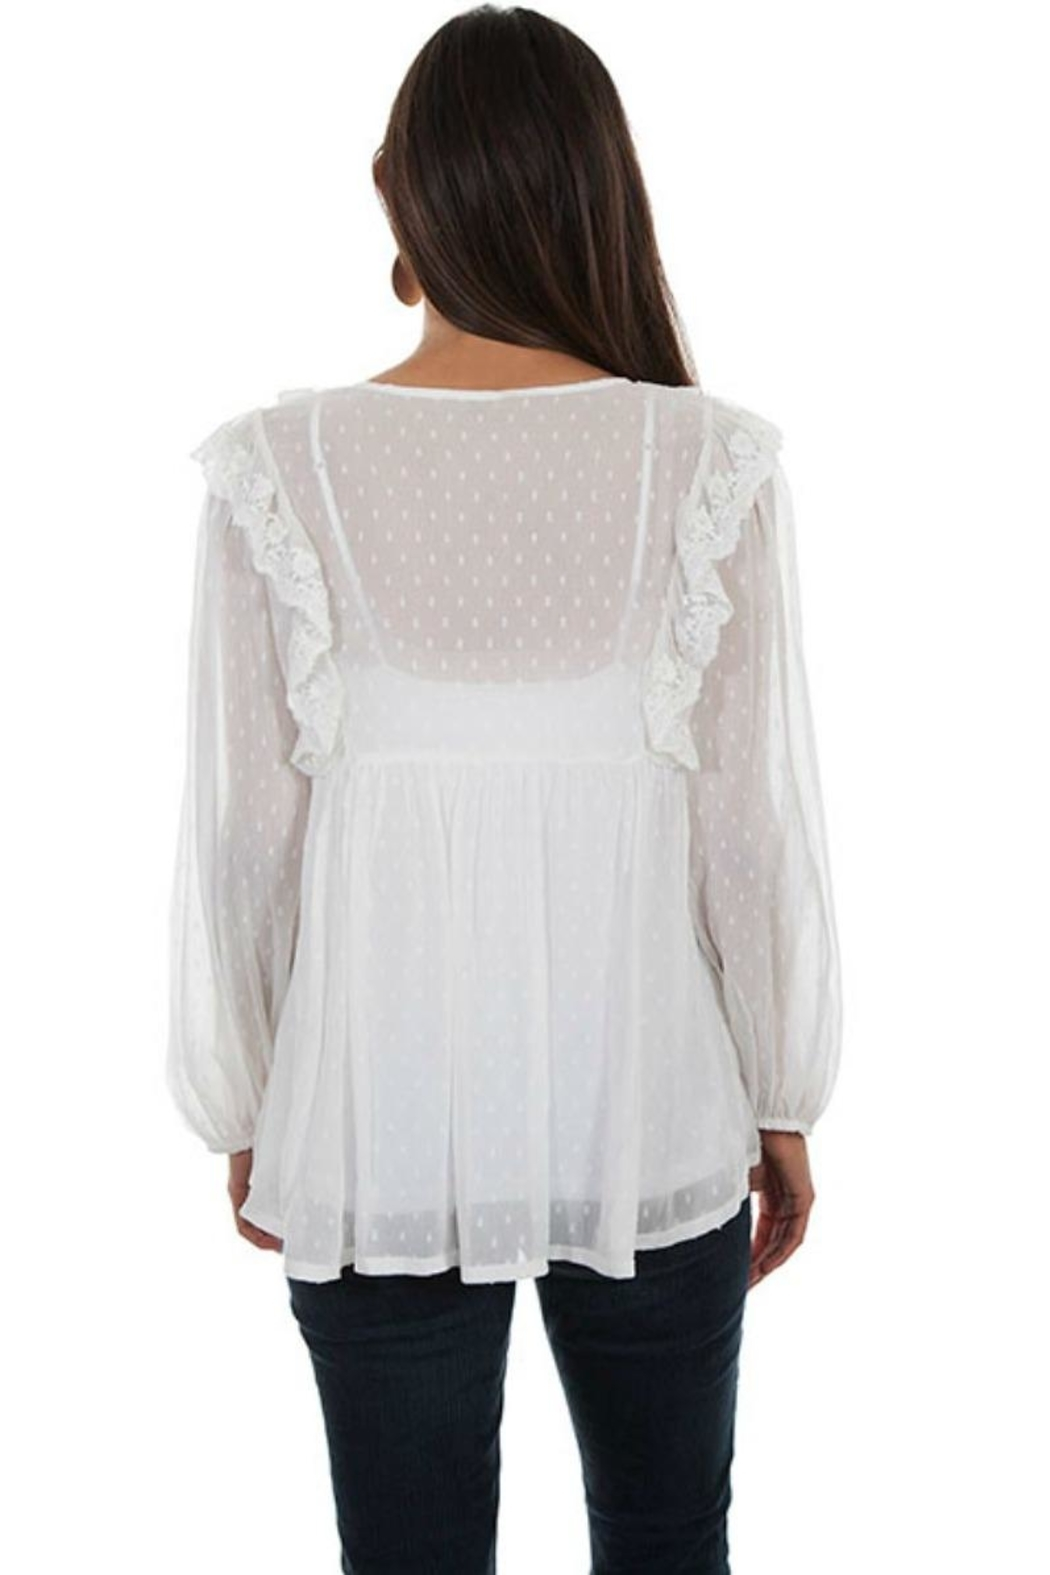 Scully Romantic Ruffled Blouse - Front Full Image